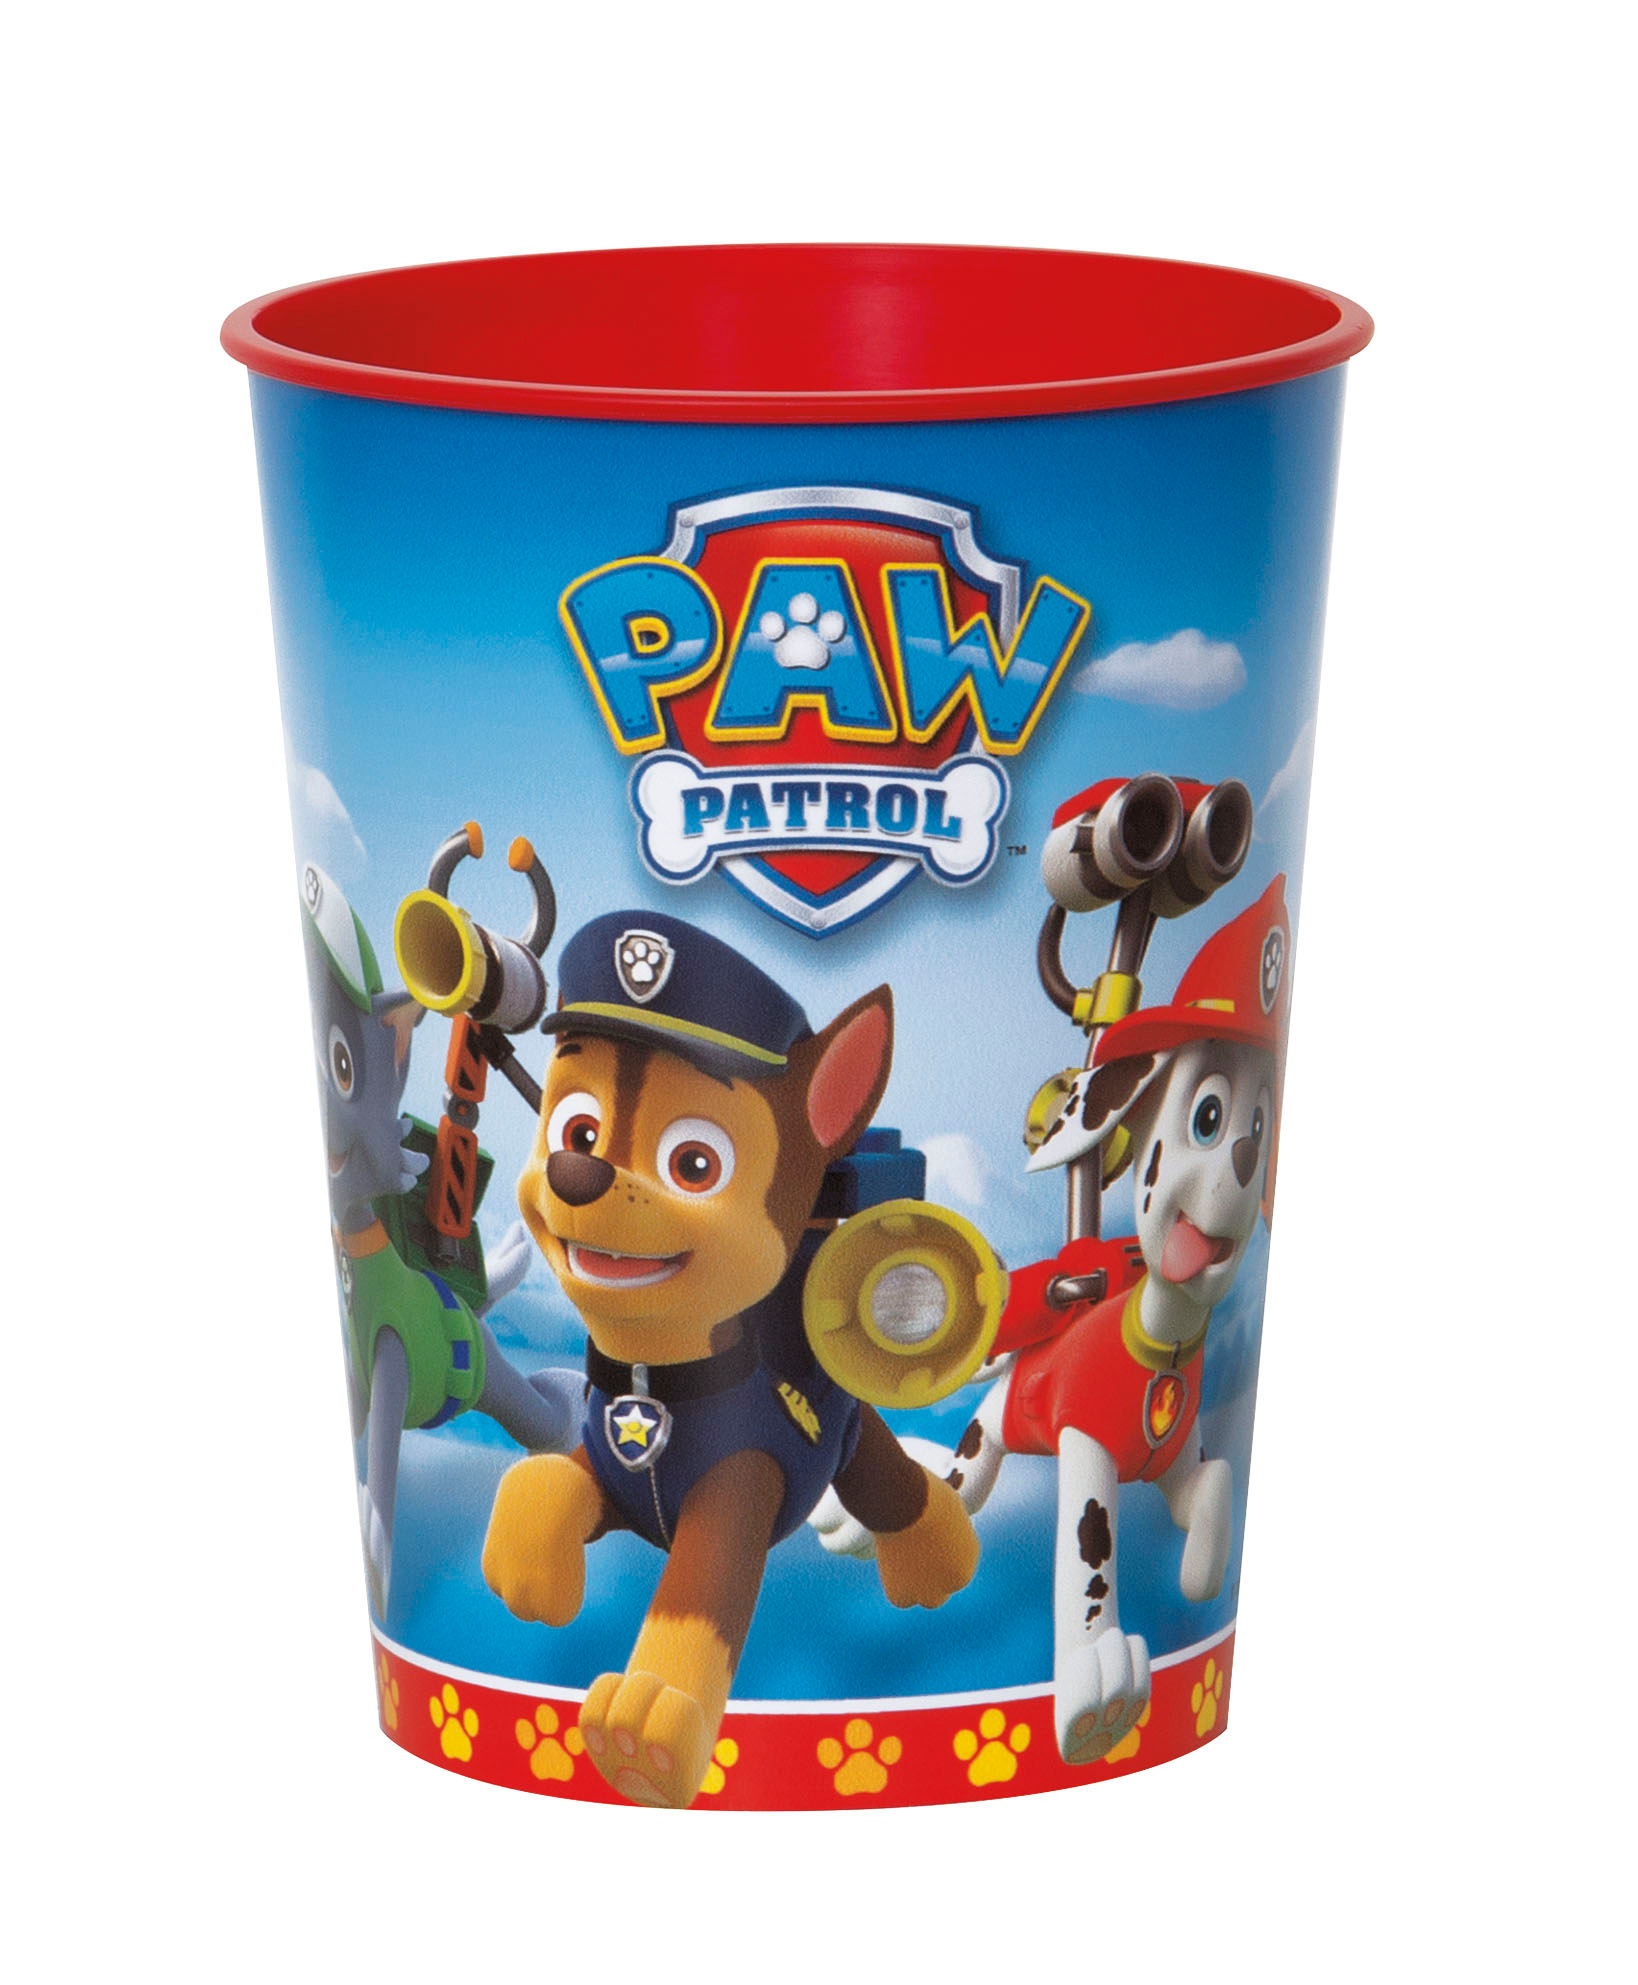 Paw Patrol Party Tableware Decorations Childrens Birthday Partyware Supplies Fba